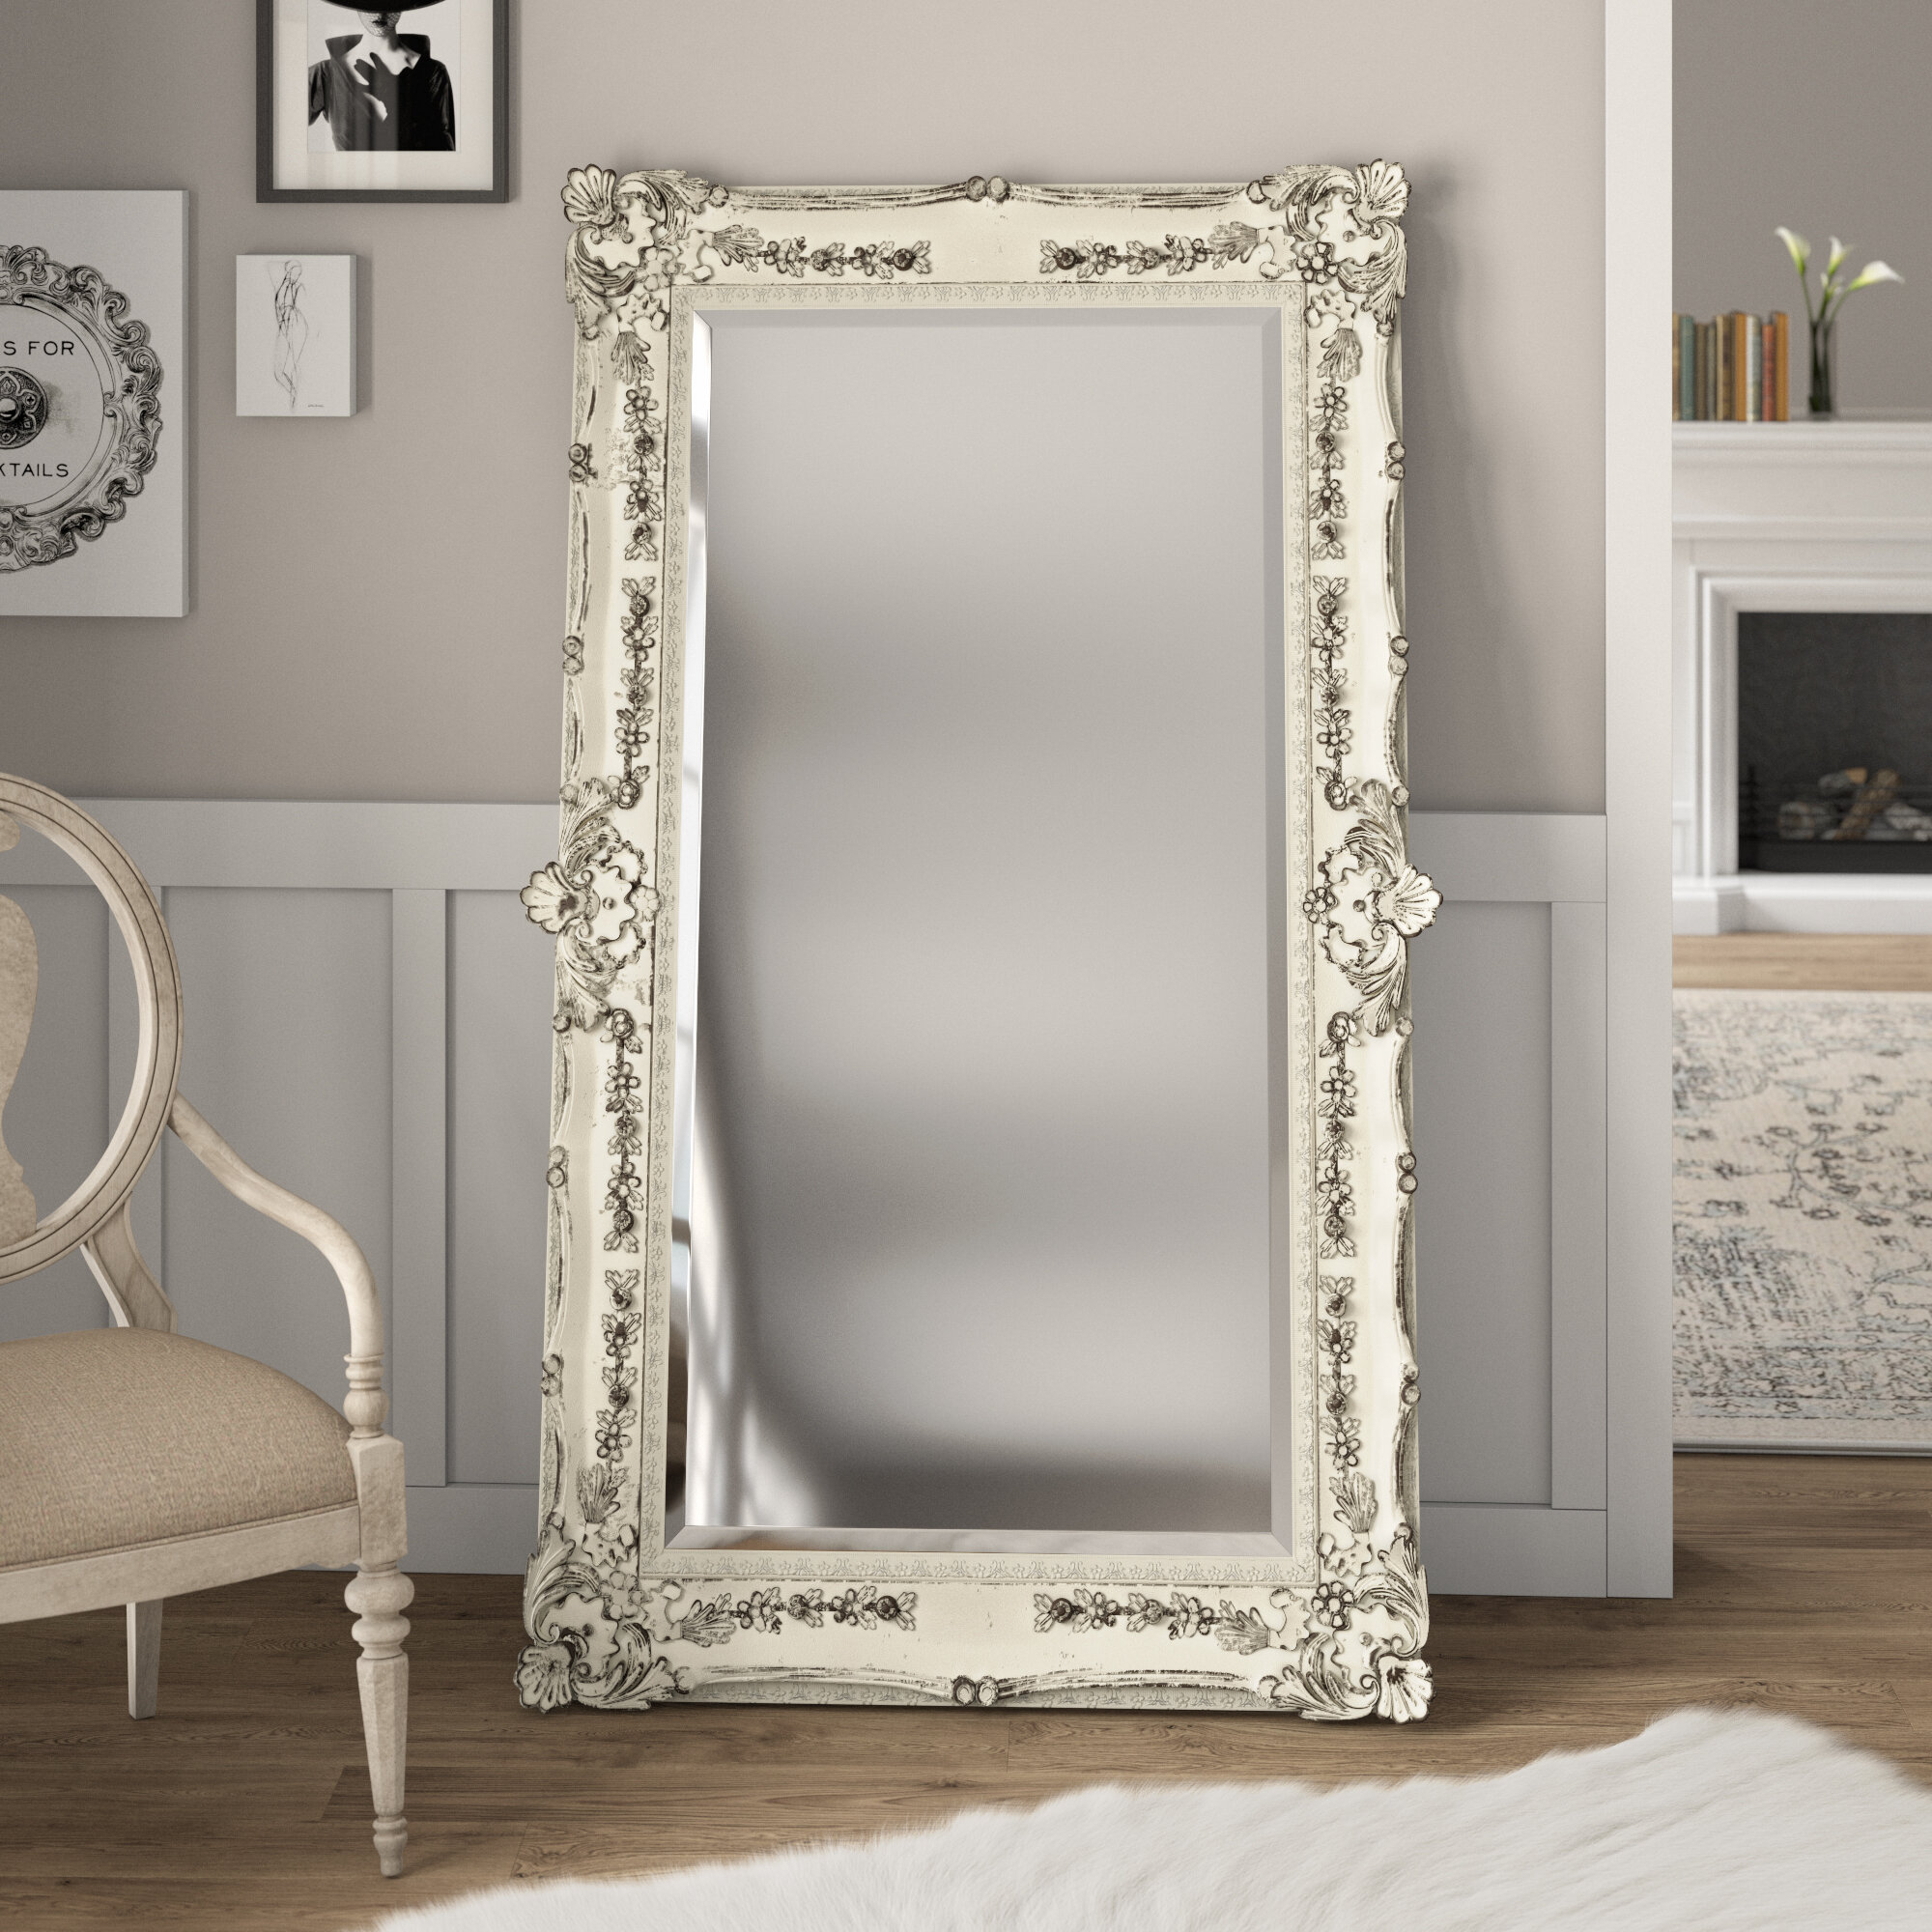 Ornate Full Length Mirror | Wayfair With Handcrafted Farmhouse Full Length Mirrors (View 23 of 30)